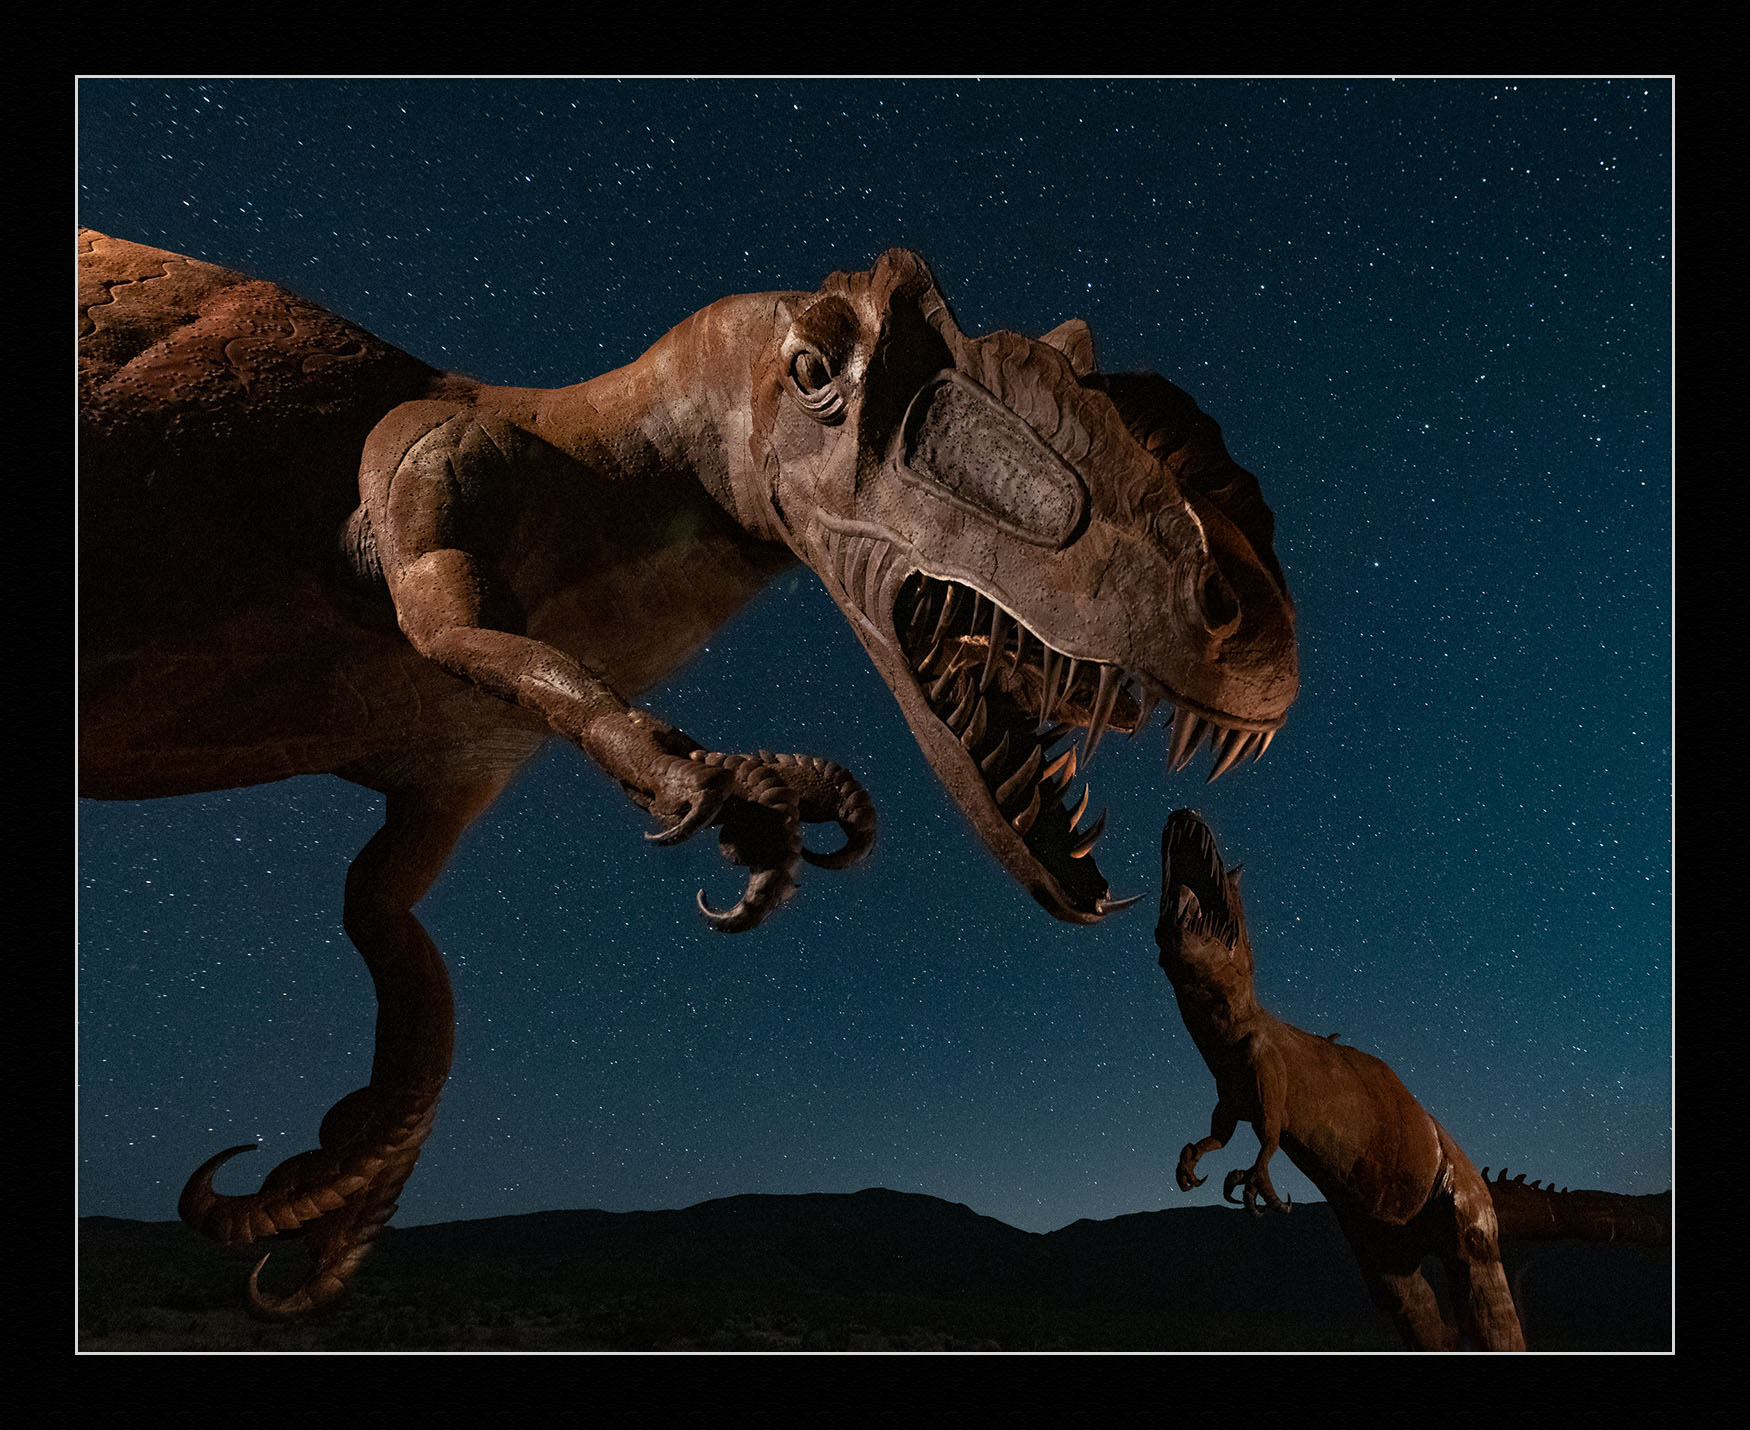 Dueling Dinosaurs, Borrego Springs, California.  Nikon D750  with an  Irix 15mm f/2.4  lens, lit with a  Luxli Viola  and  Maglite Mini . 25 seconds, f/4.5, ISO 4000.